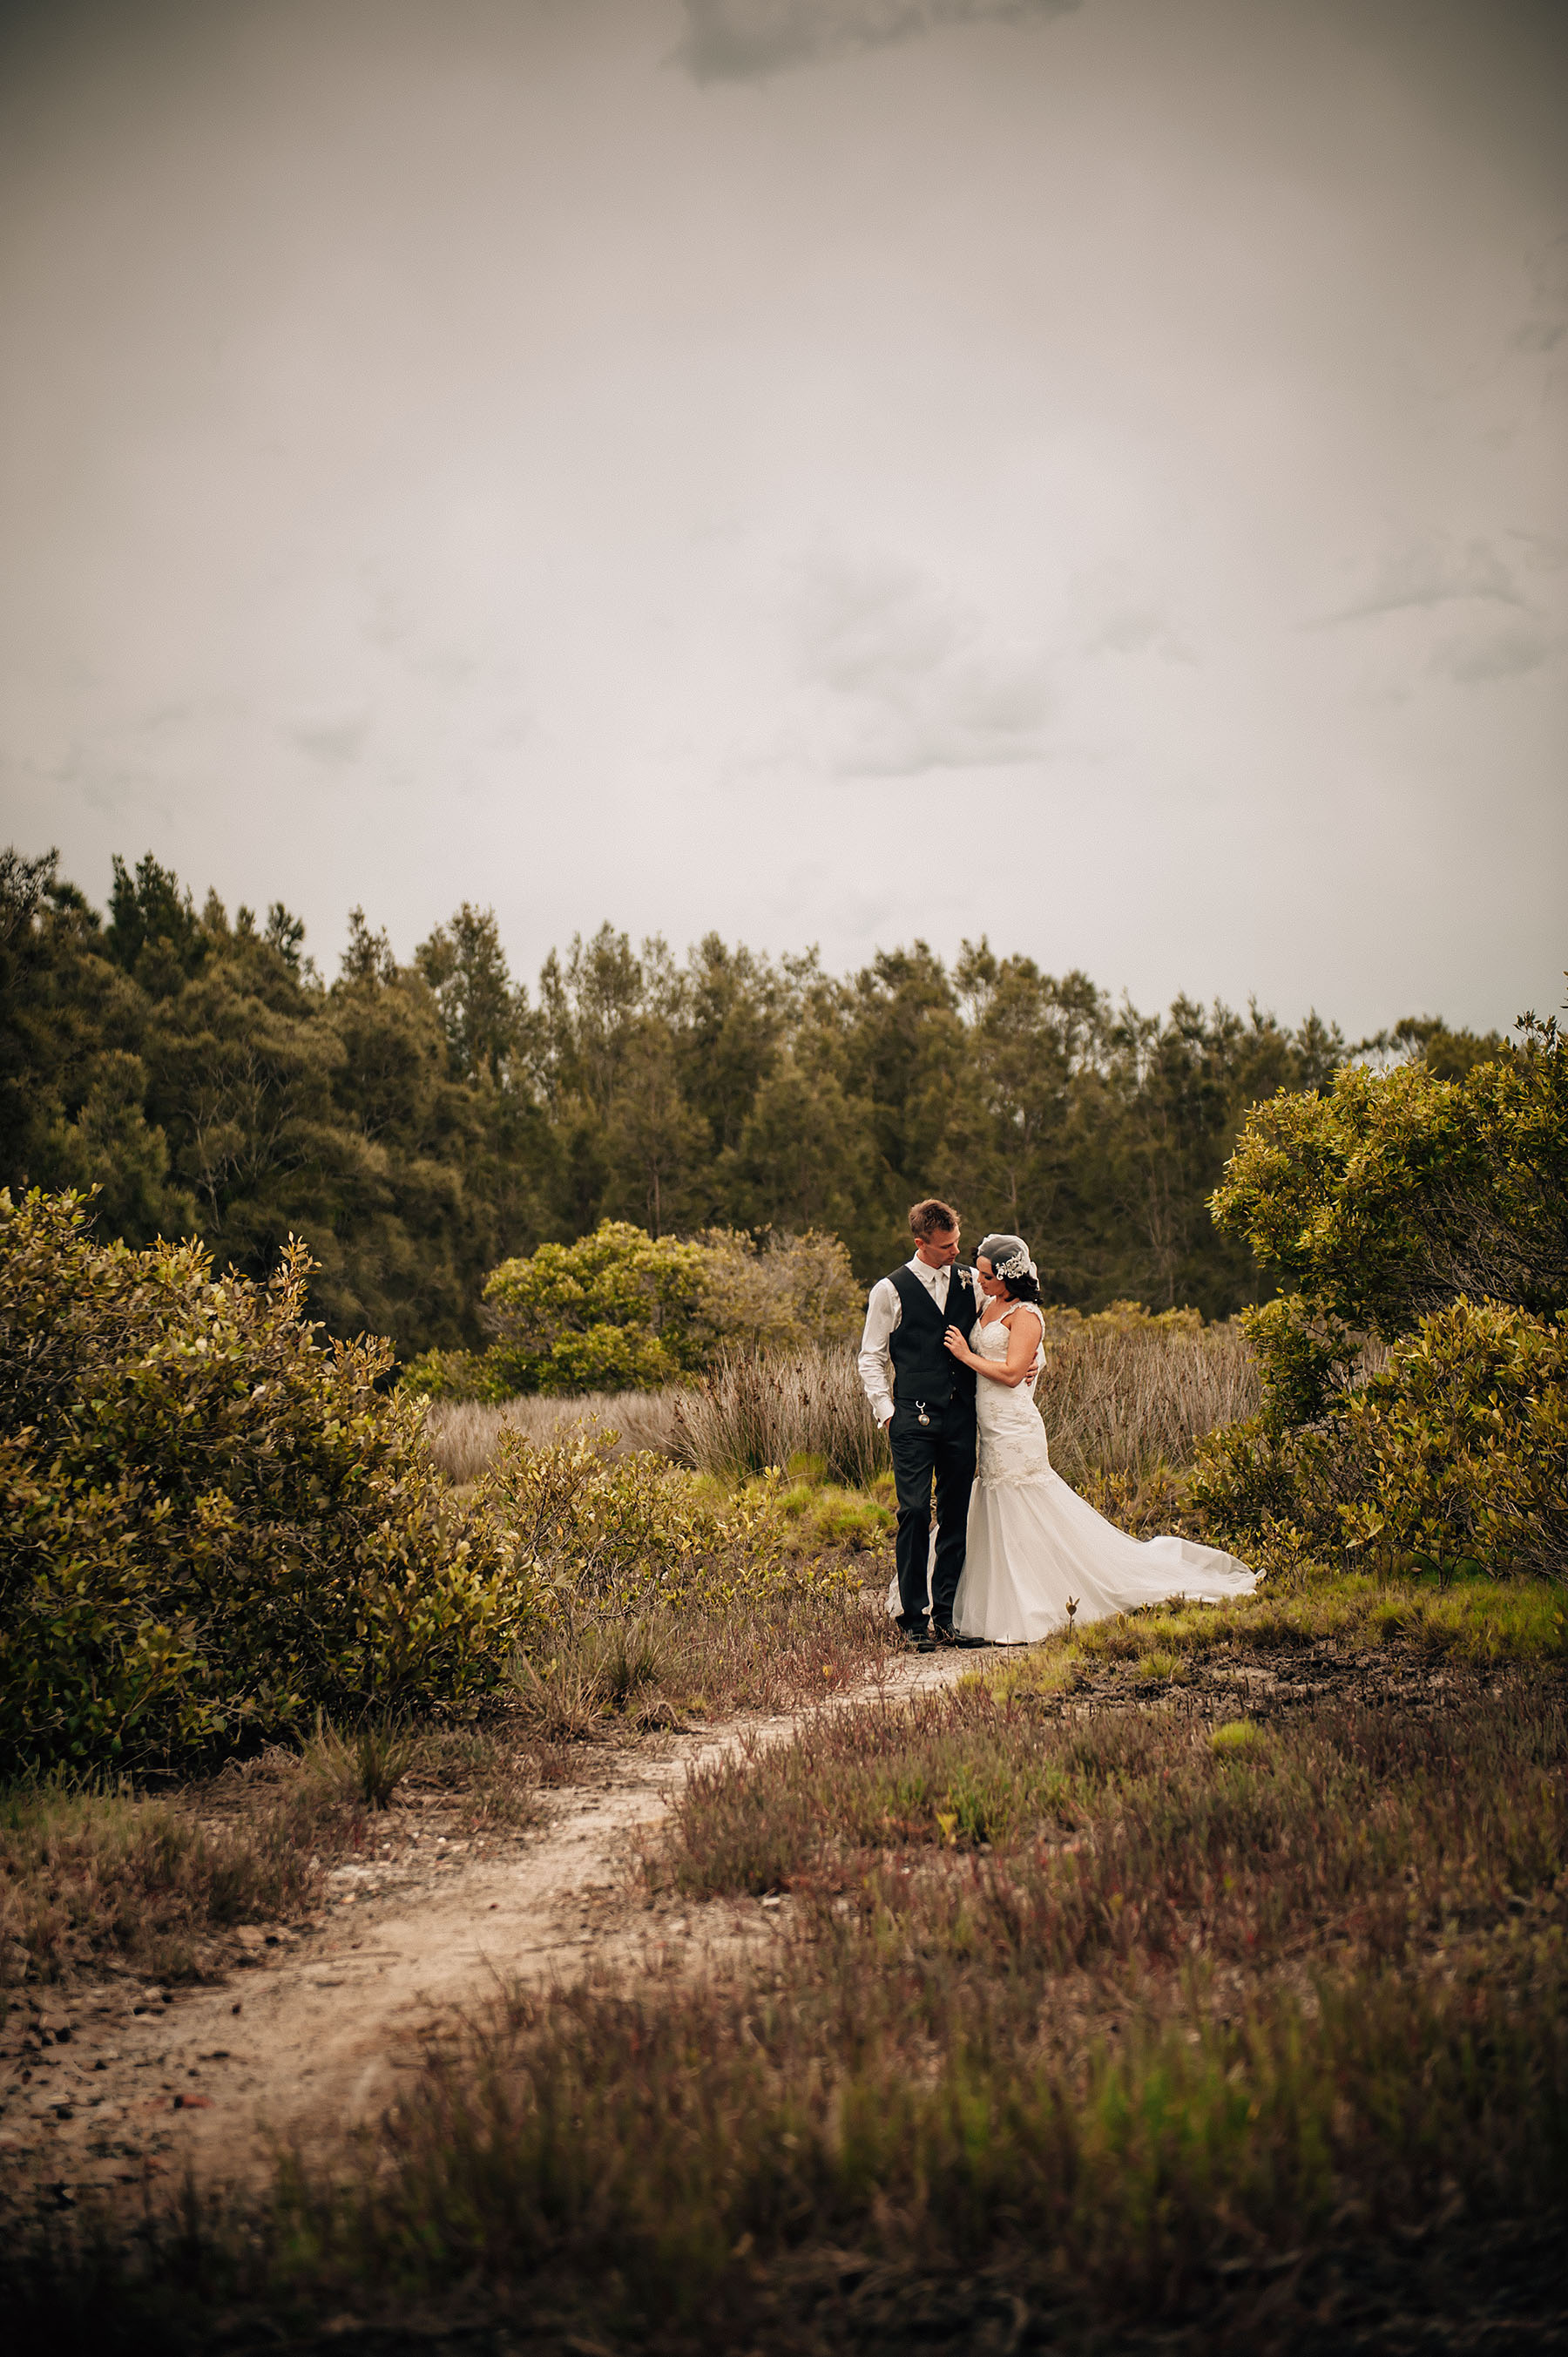 Marryme_wedding_photography_dorrigo_bellingen_photographer_17.jpg